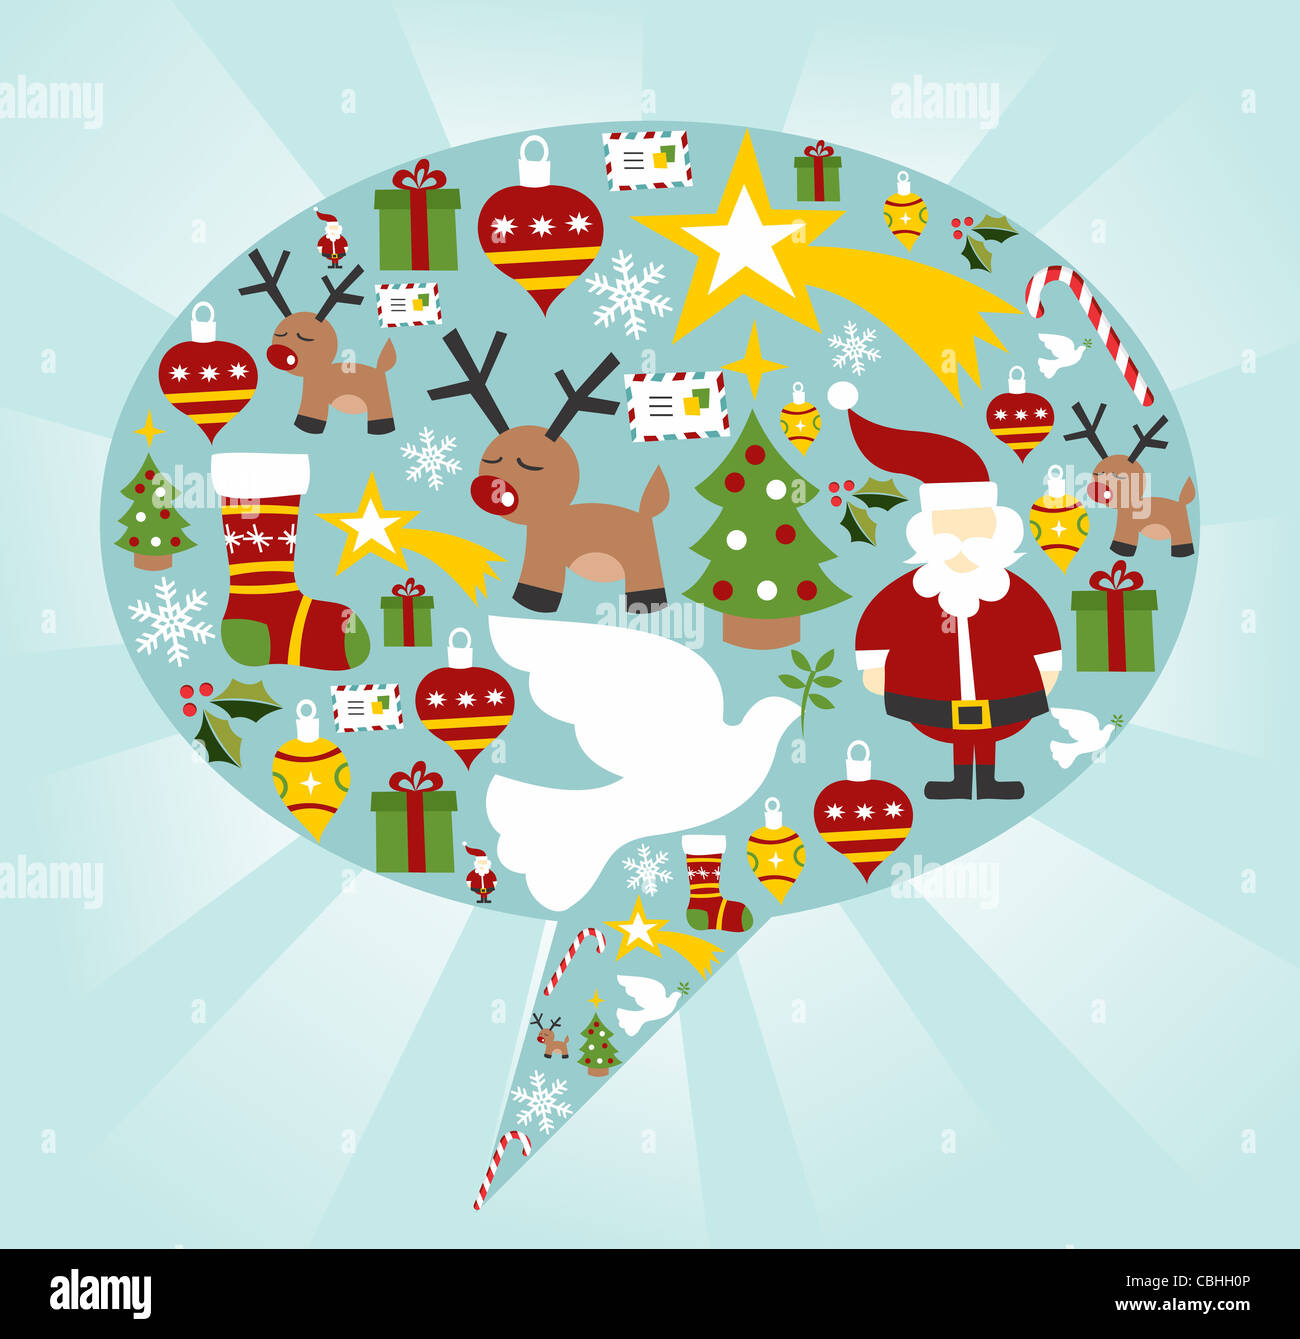 Xmas icon set in speech bubble shape background. Vector file available. - Stock Image